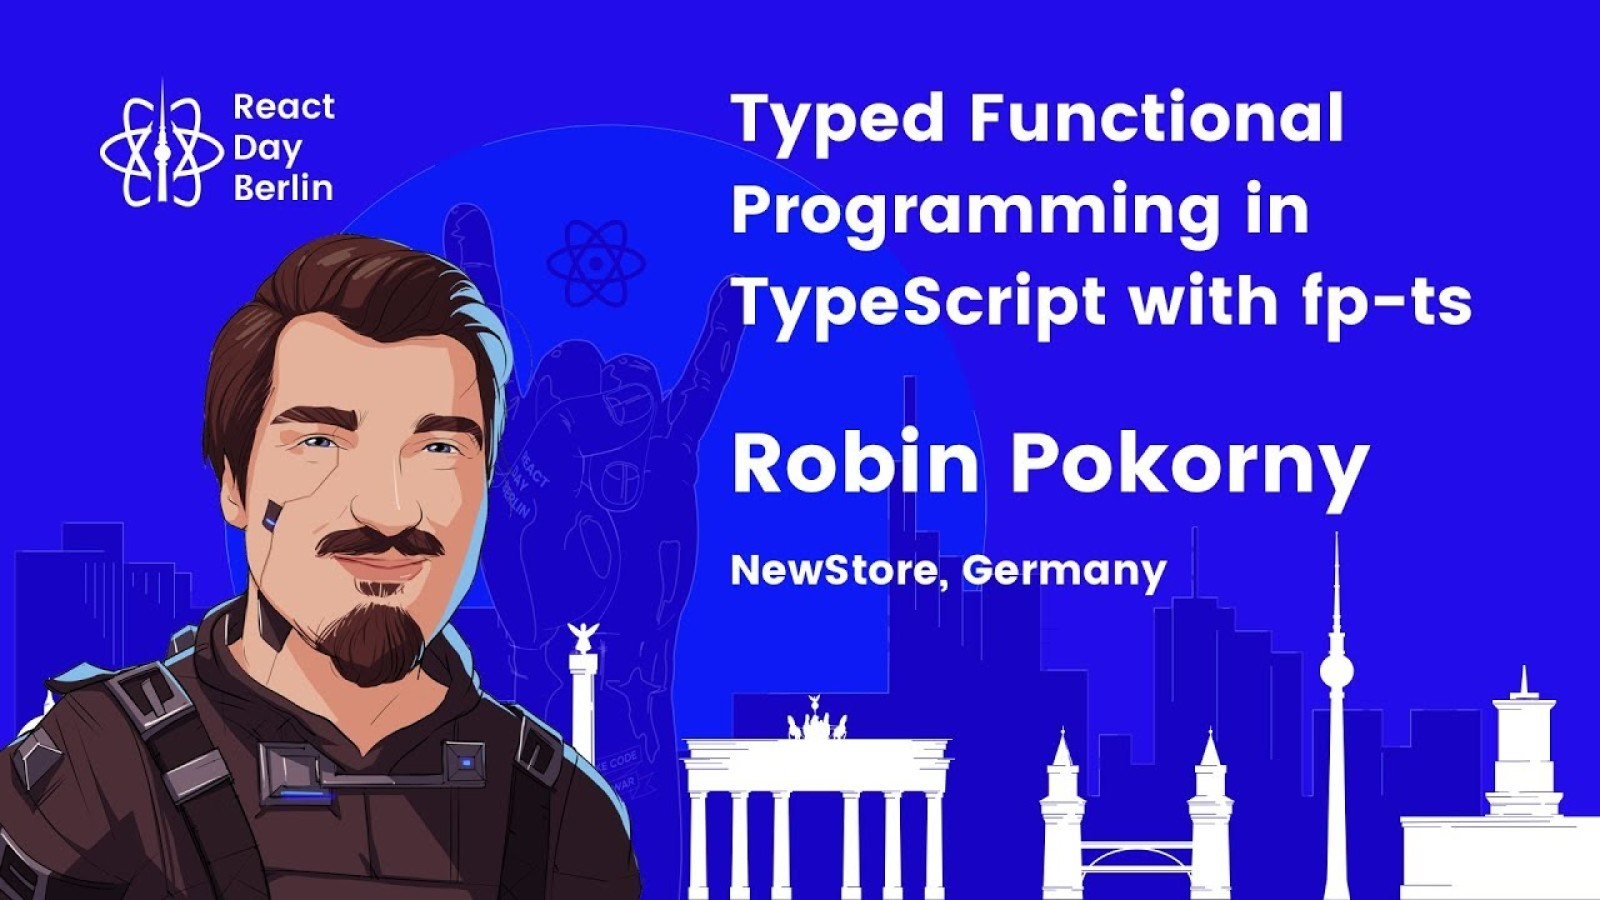 Typed Functional Programming in TypeScript with fp-ts